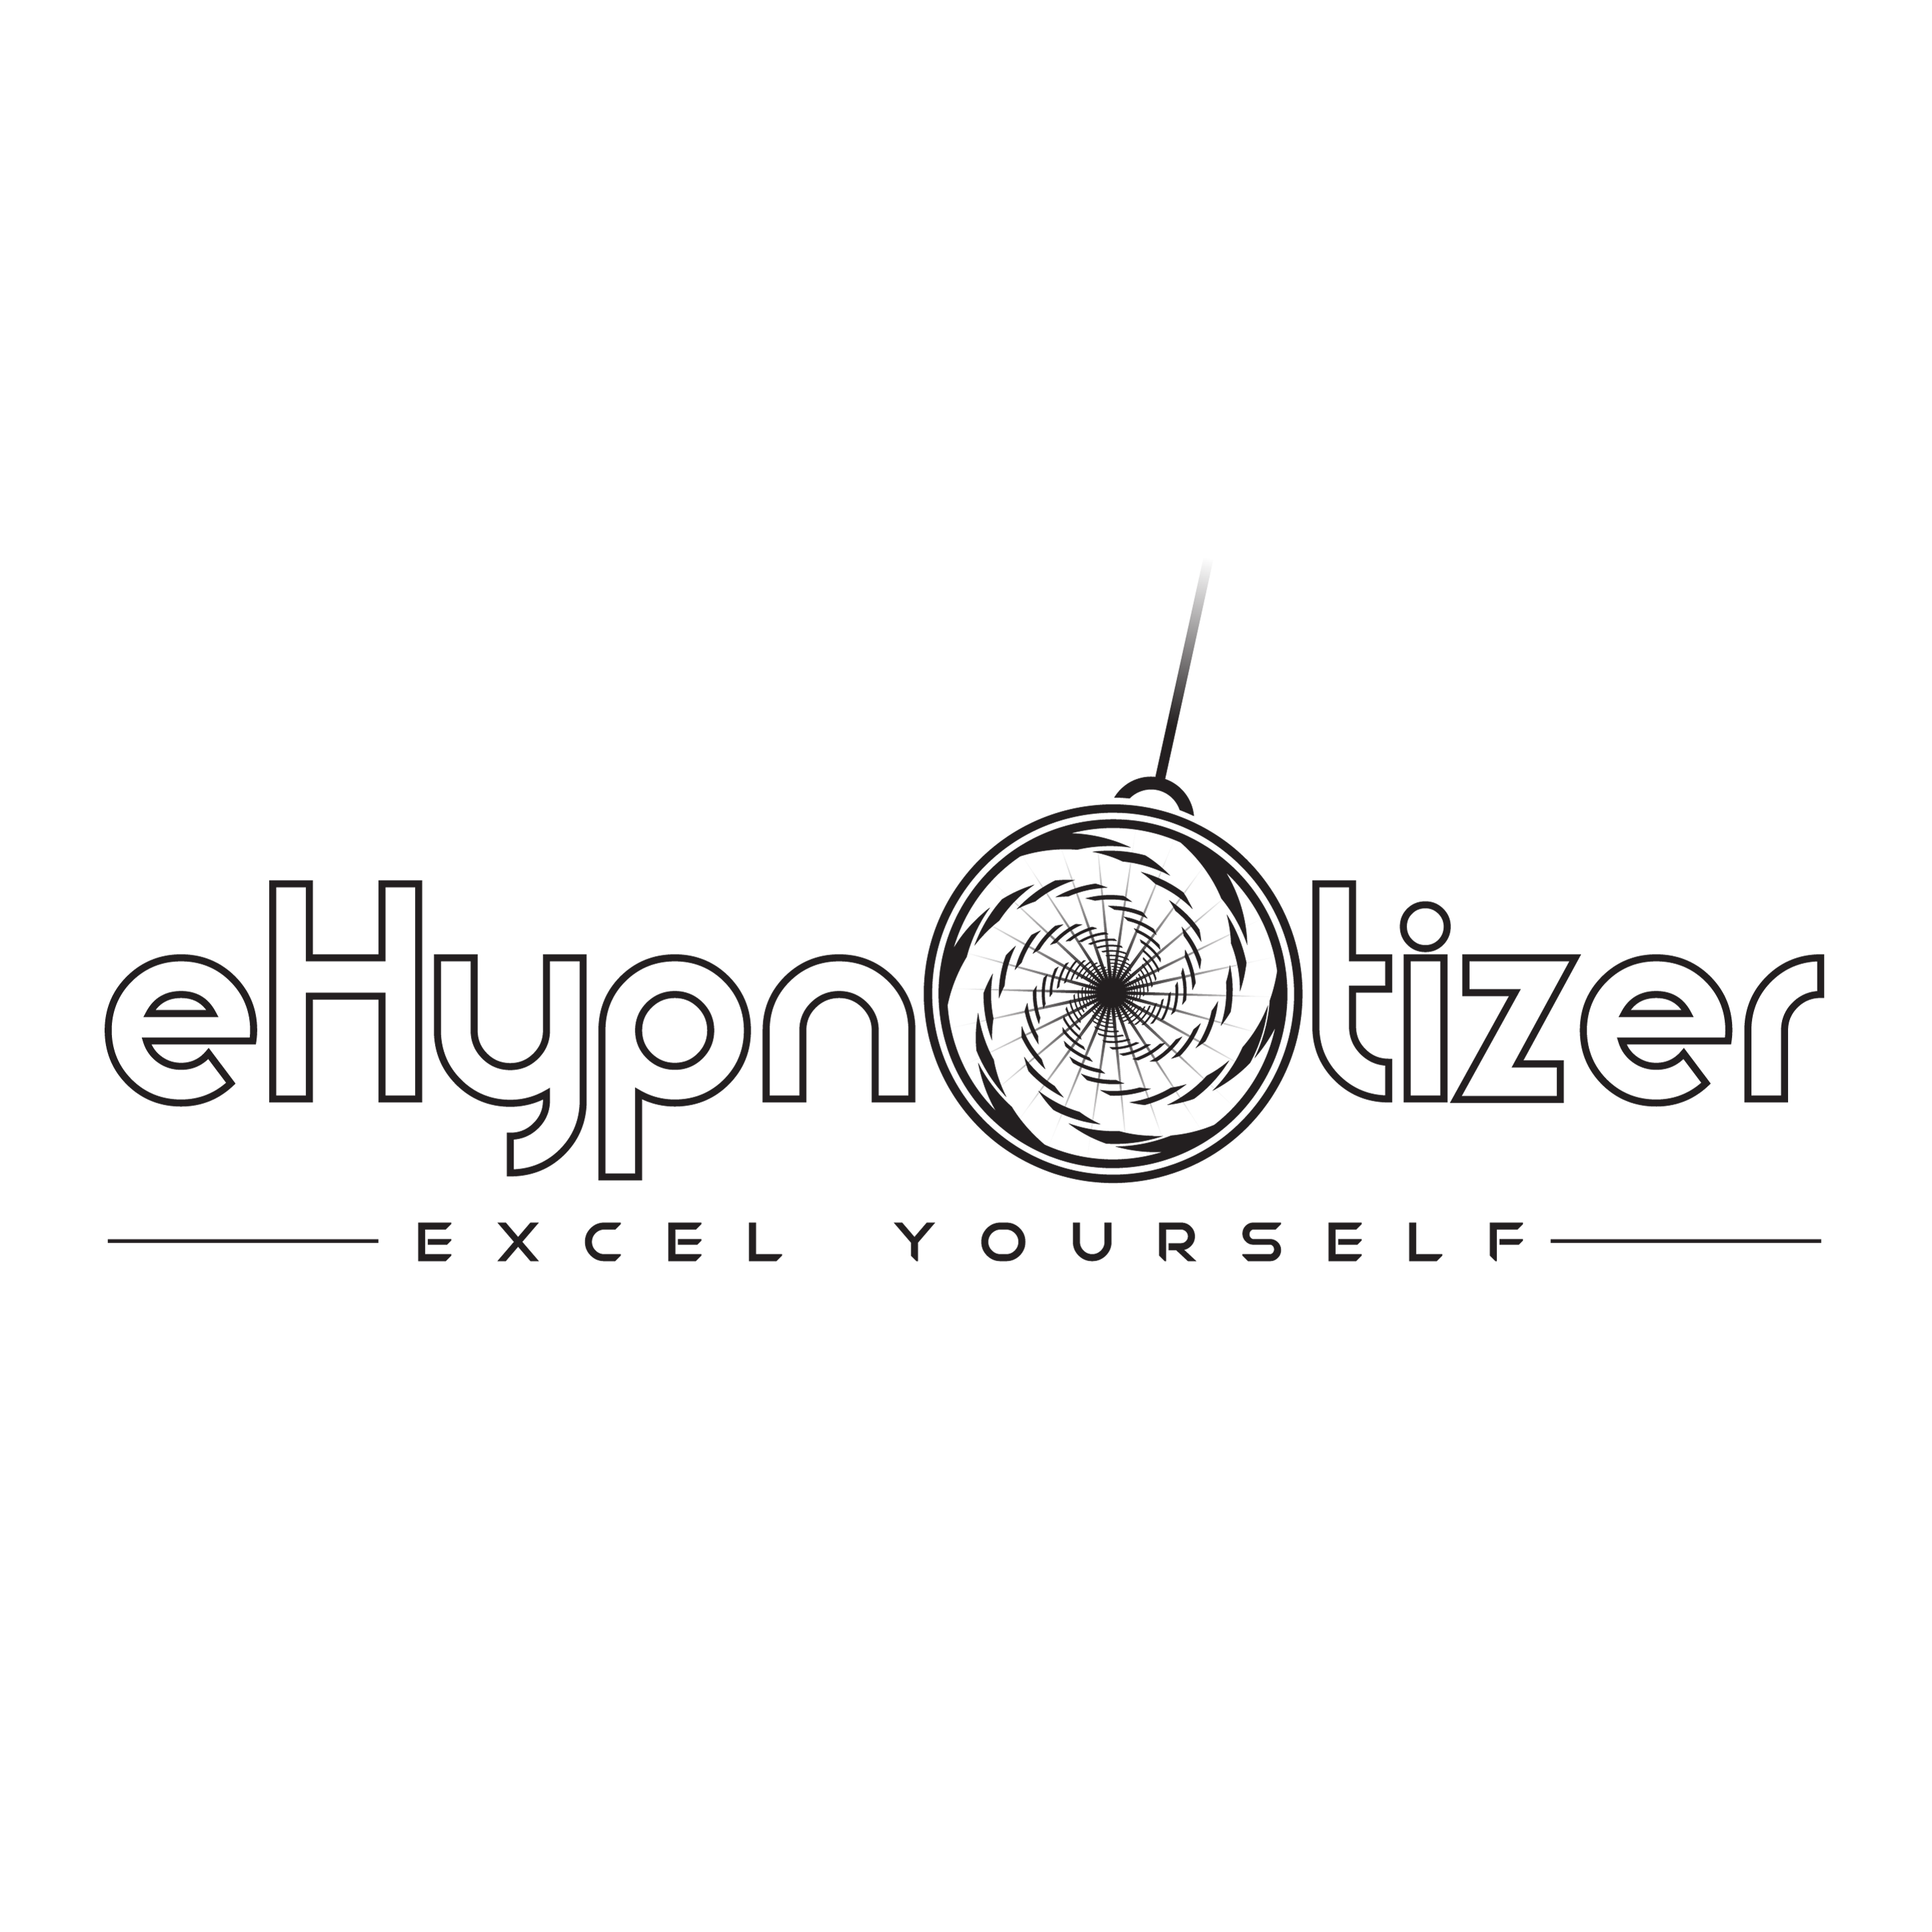 Modern logo needed for a self-improvement hypnosis device